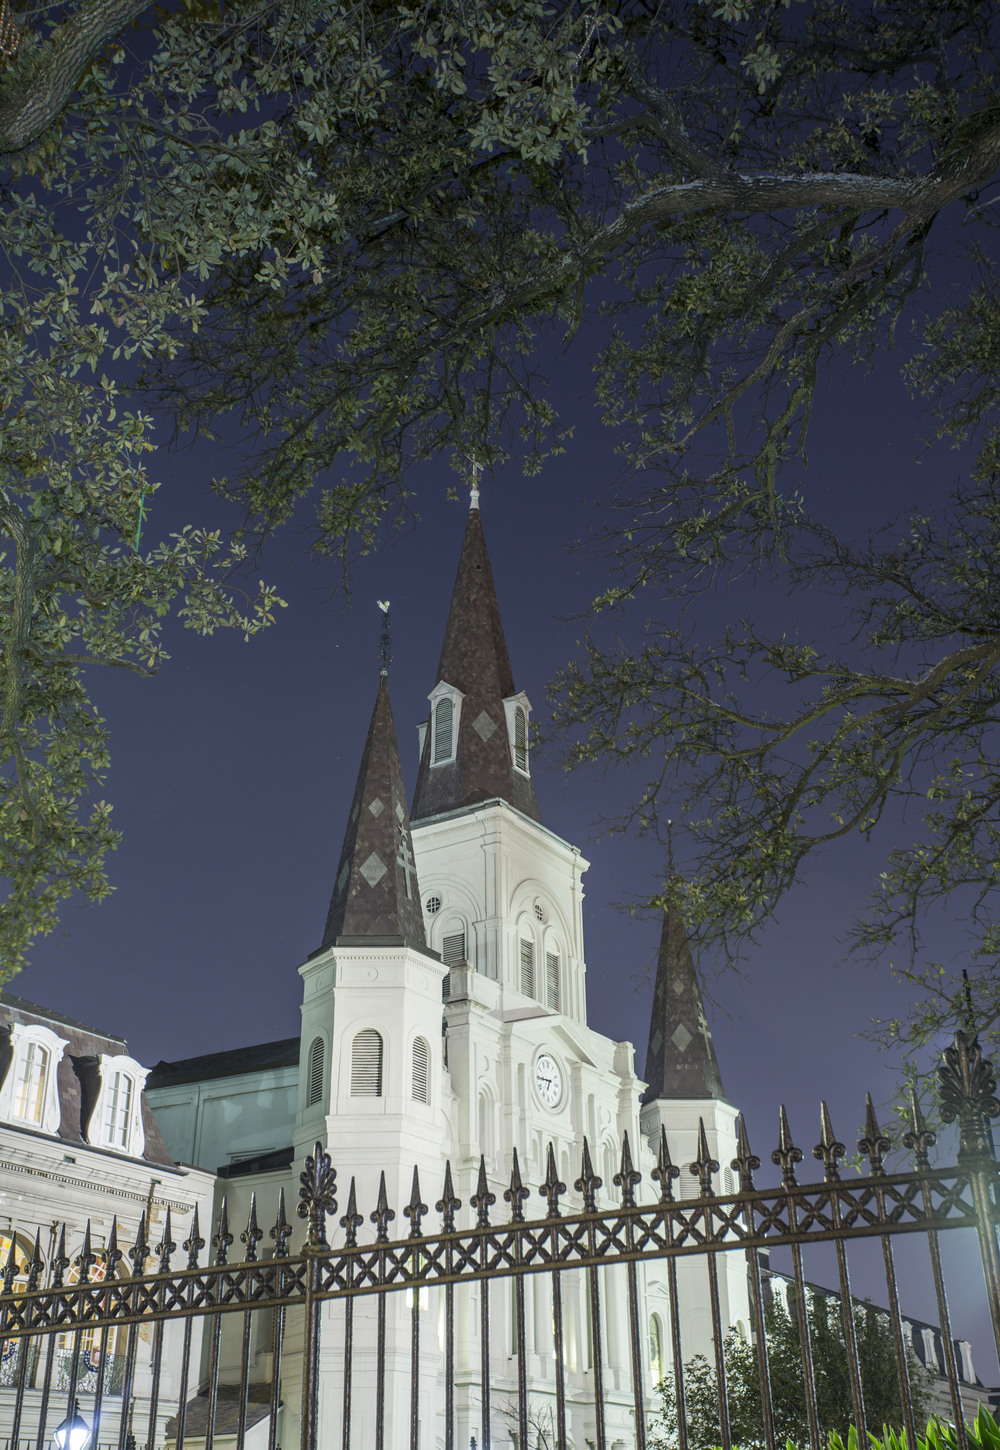 St. Louis Cathedral at night. ©Zack Smith Photography